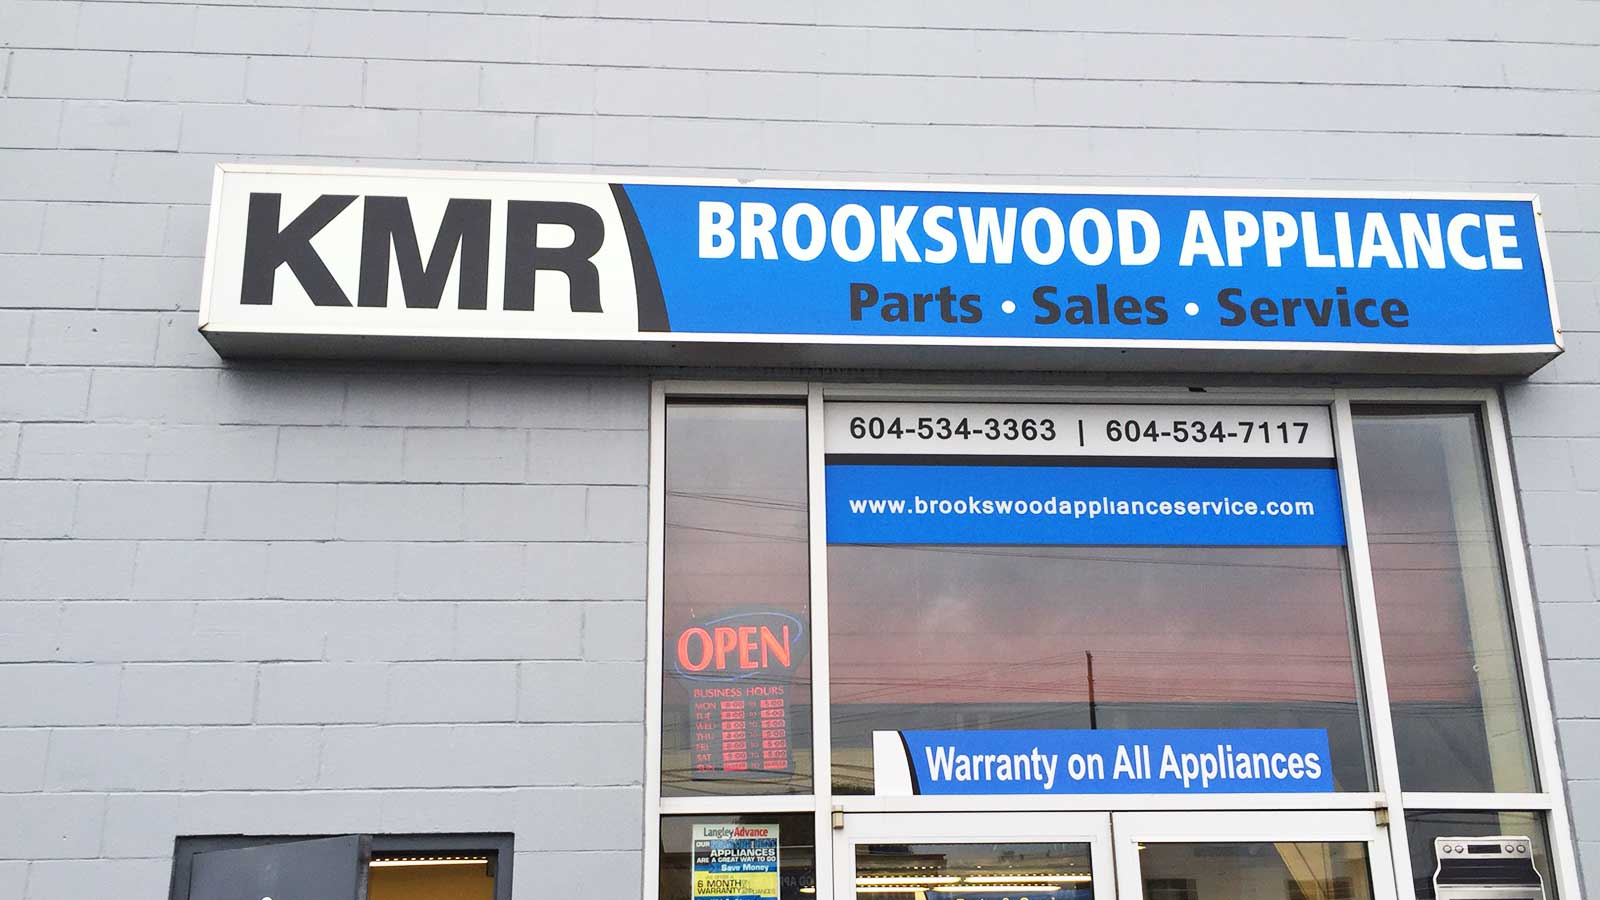 About KMR Brookswood Appliance